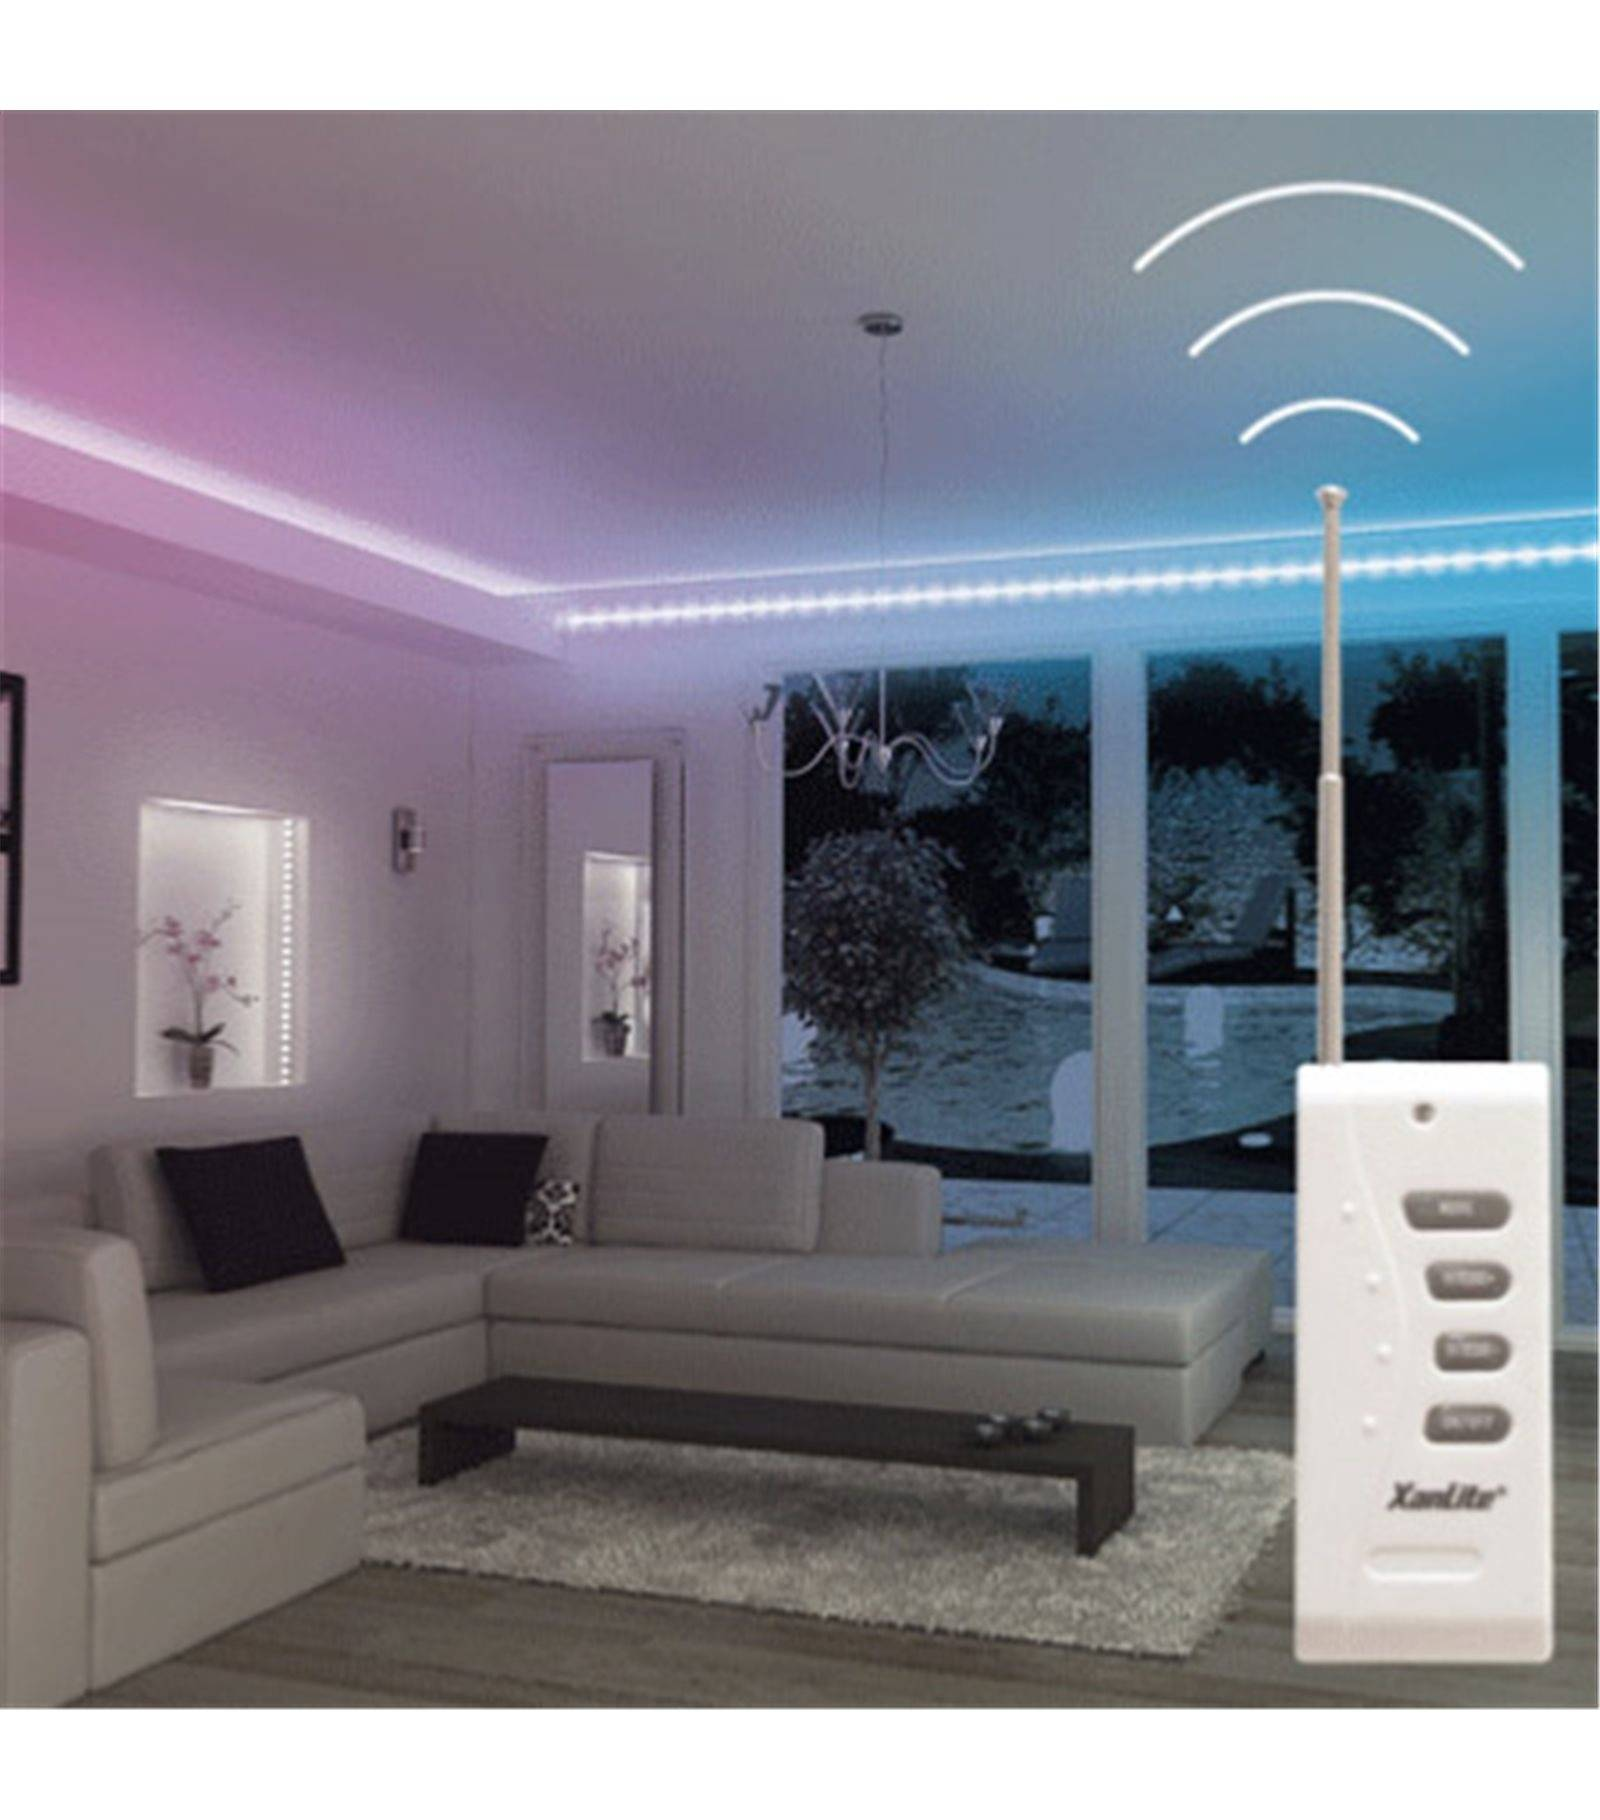 kit ruban led rgb tanche ruban ip65 autres parties ip20 bande led de 3m 18 5w avec. Black Bedroom Furniture Sets. Home Design Ideas